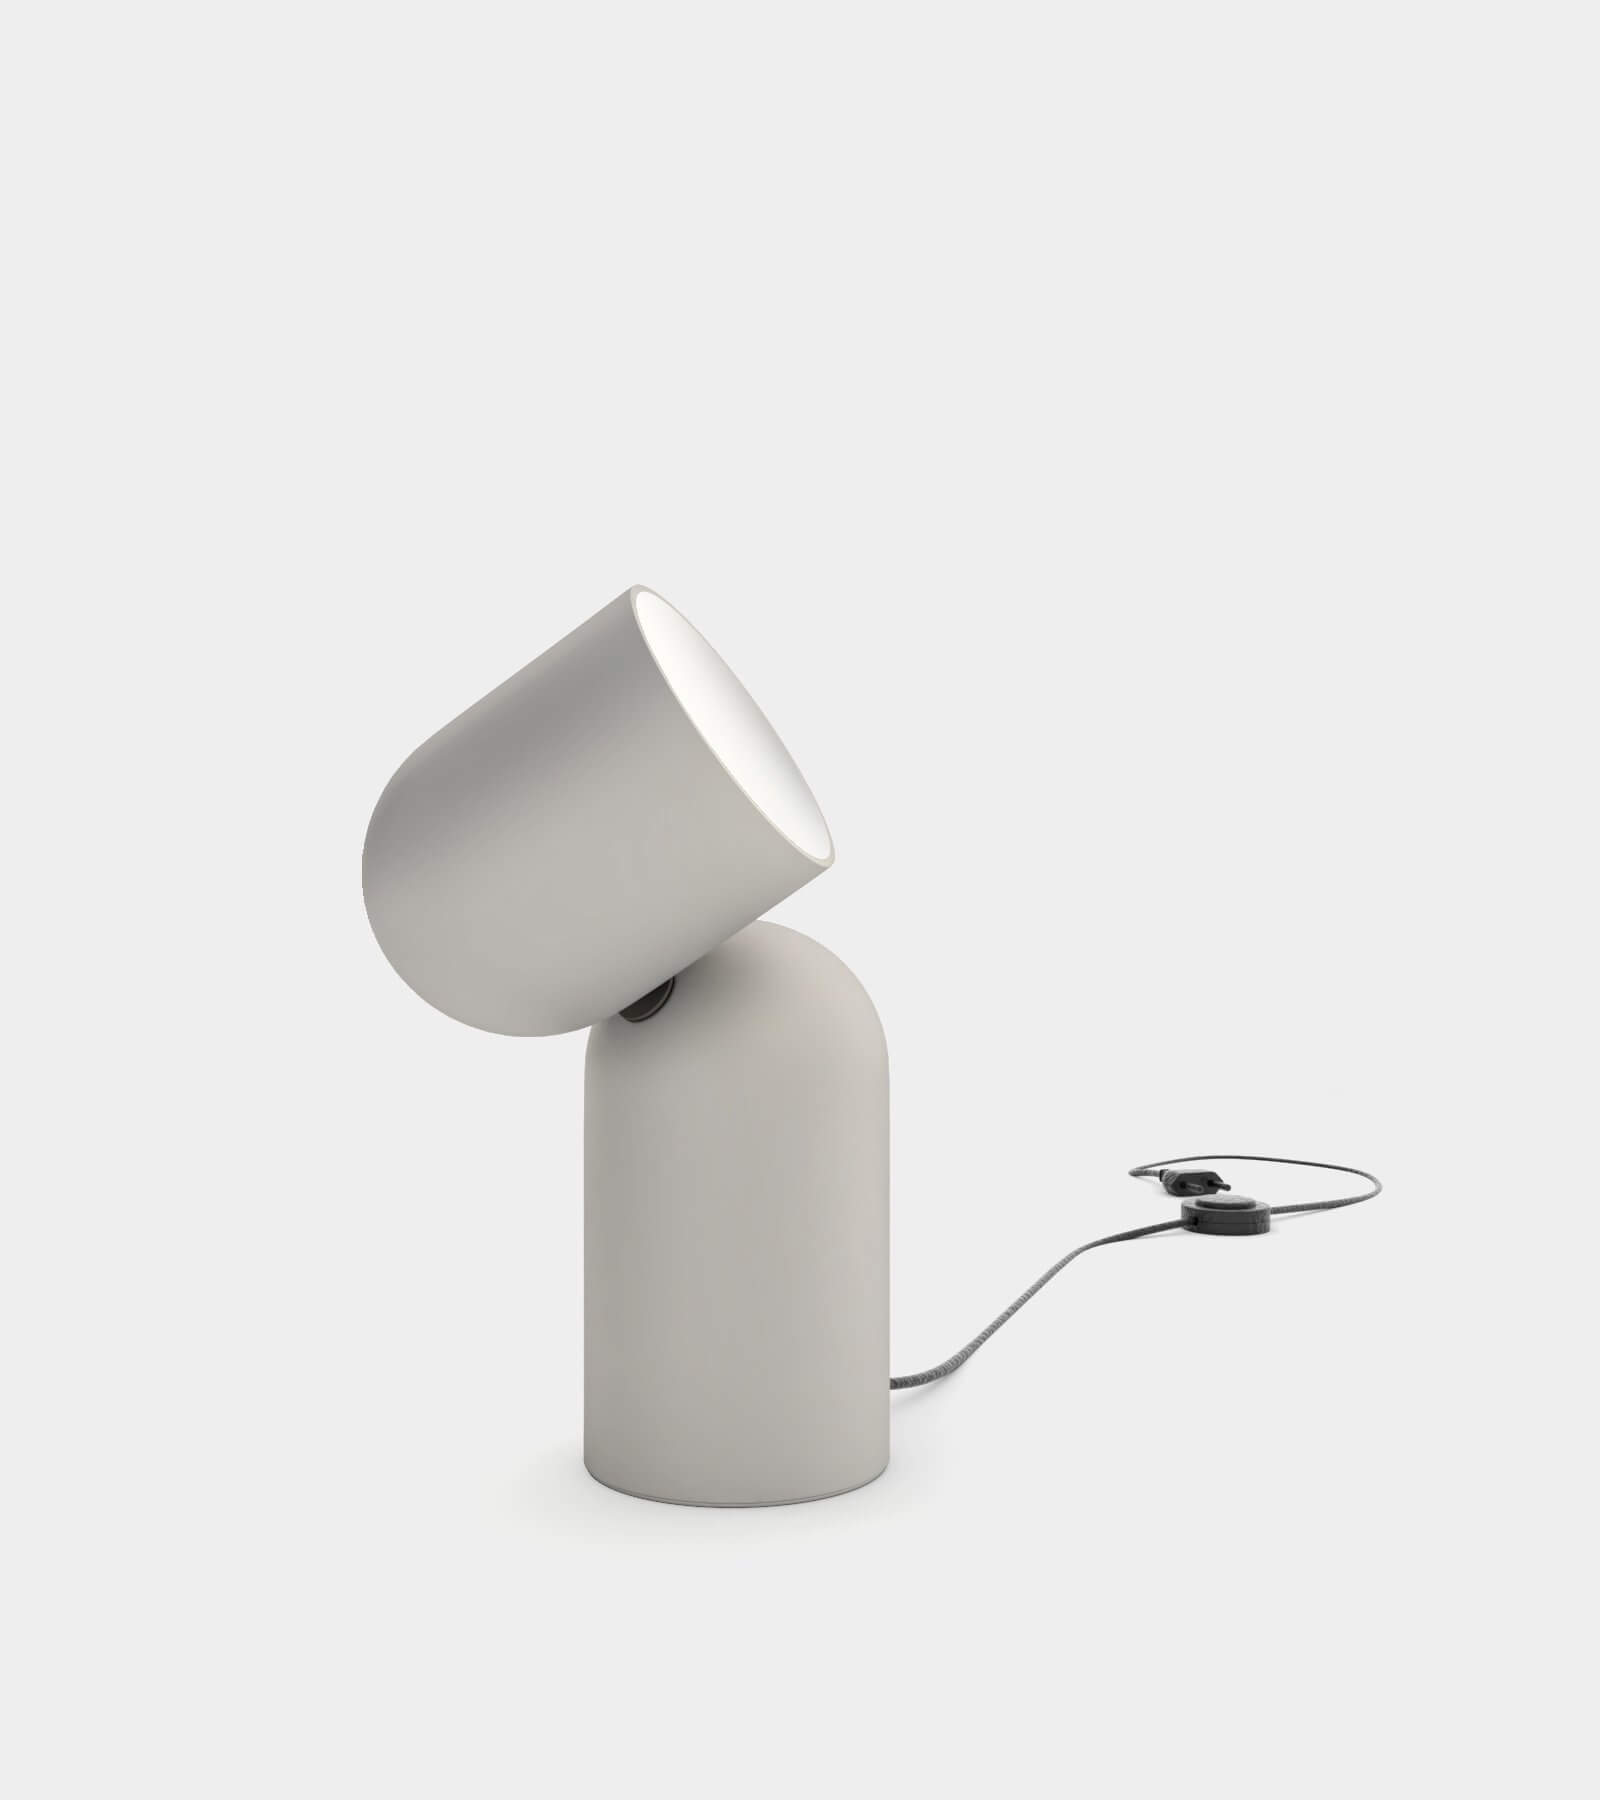 Turning table lamp 2 - 3D Model